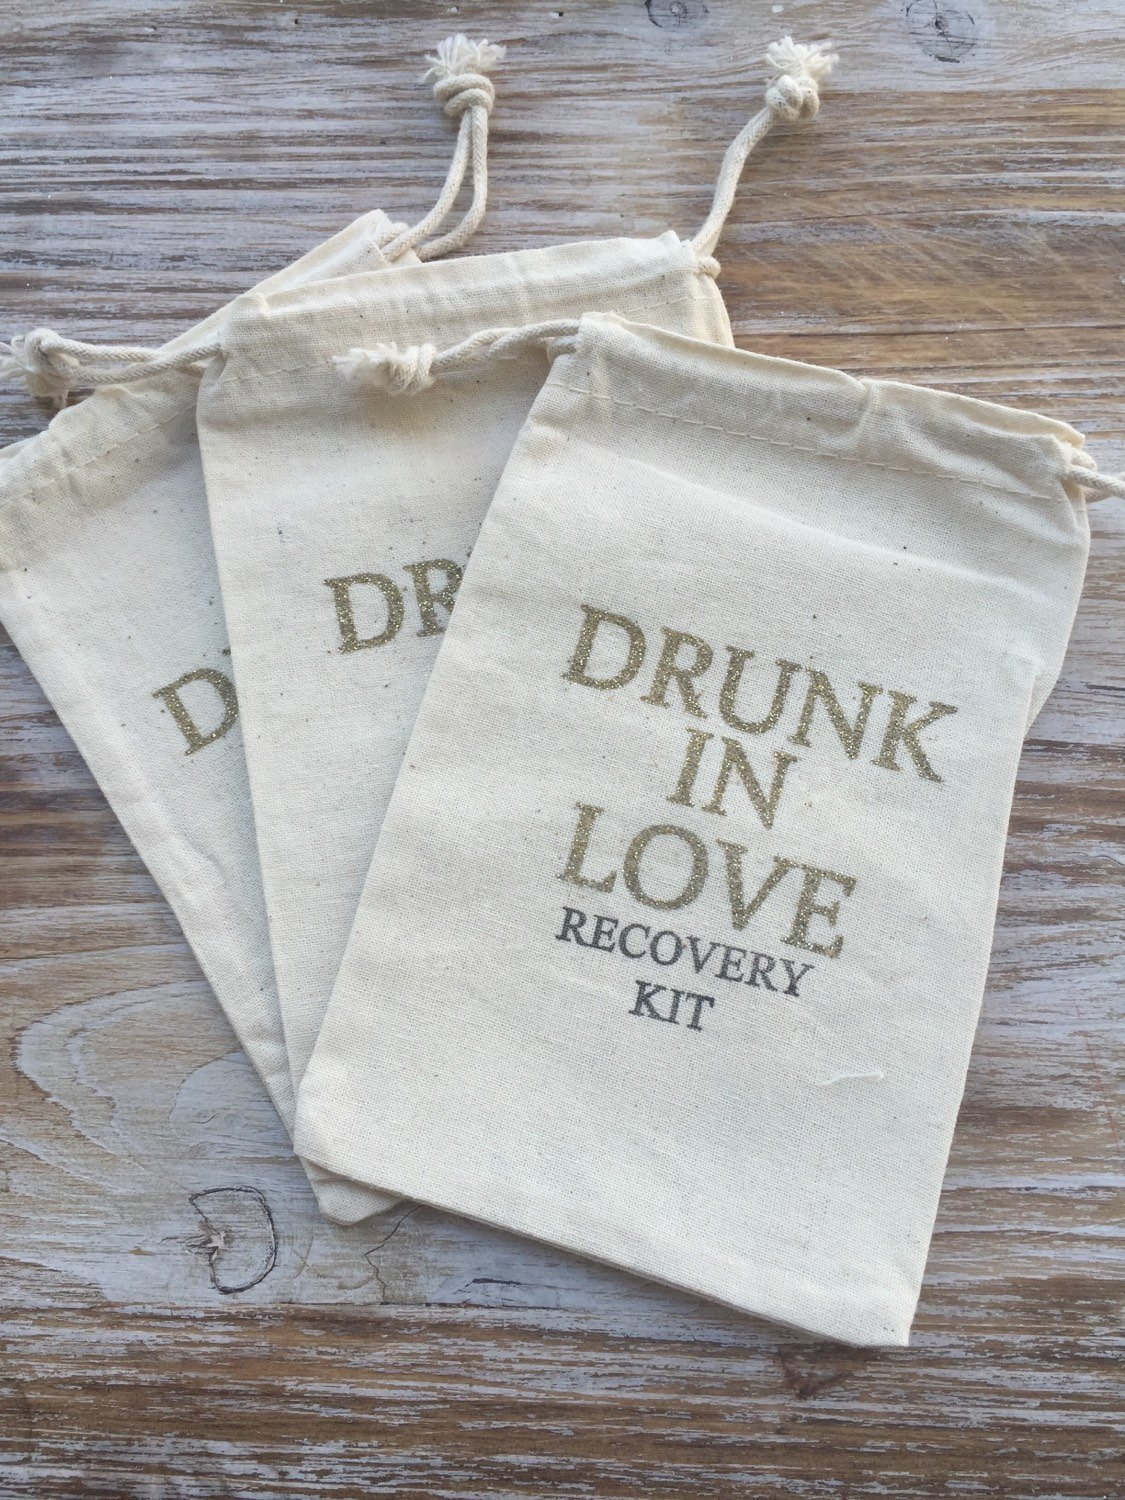 12 Gold Drunk in love Hangover kits, recovery kit, bachelorette ...